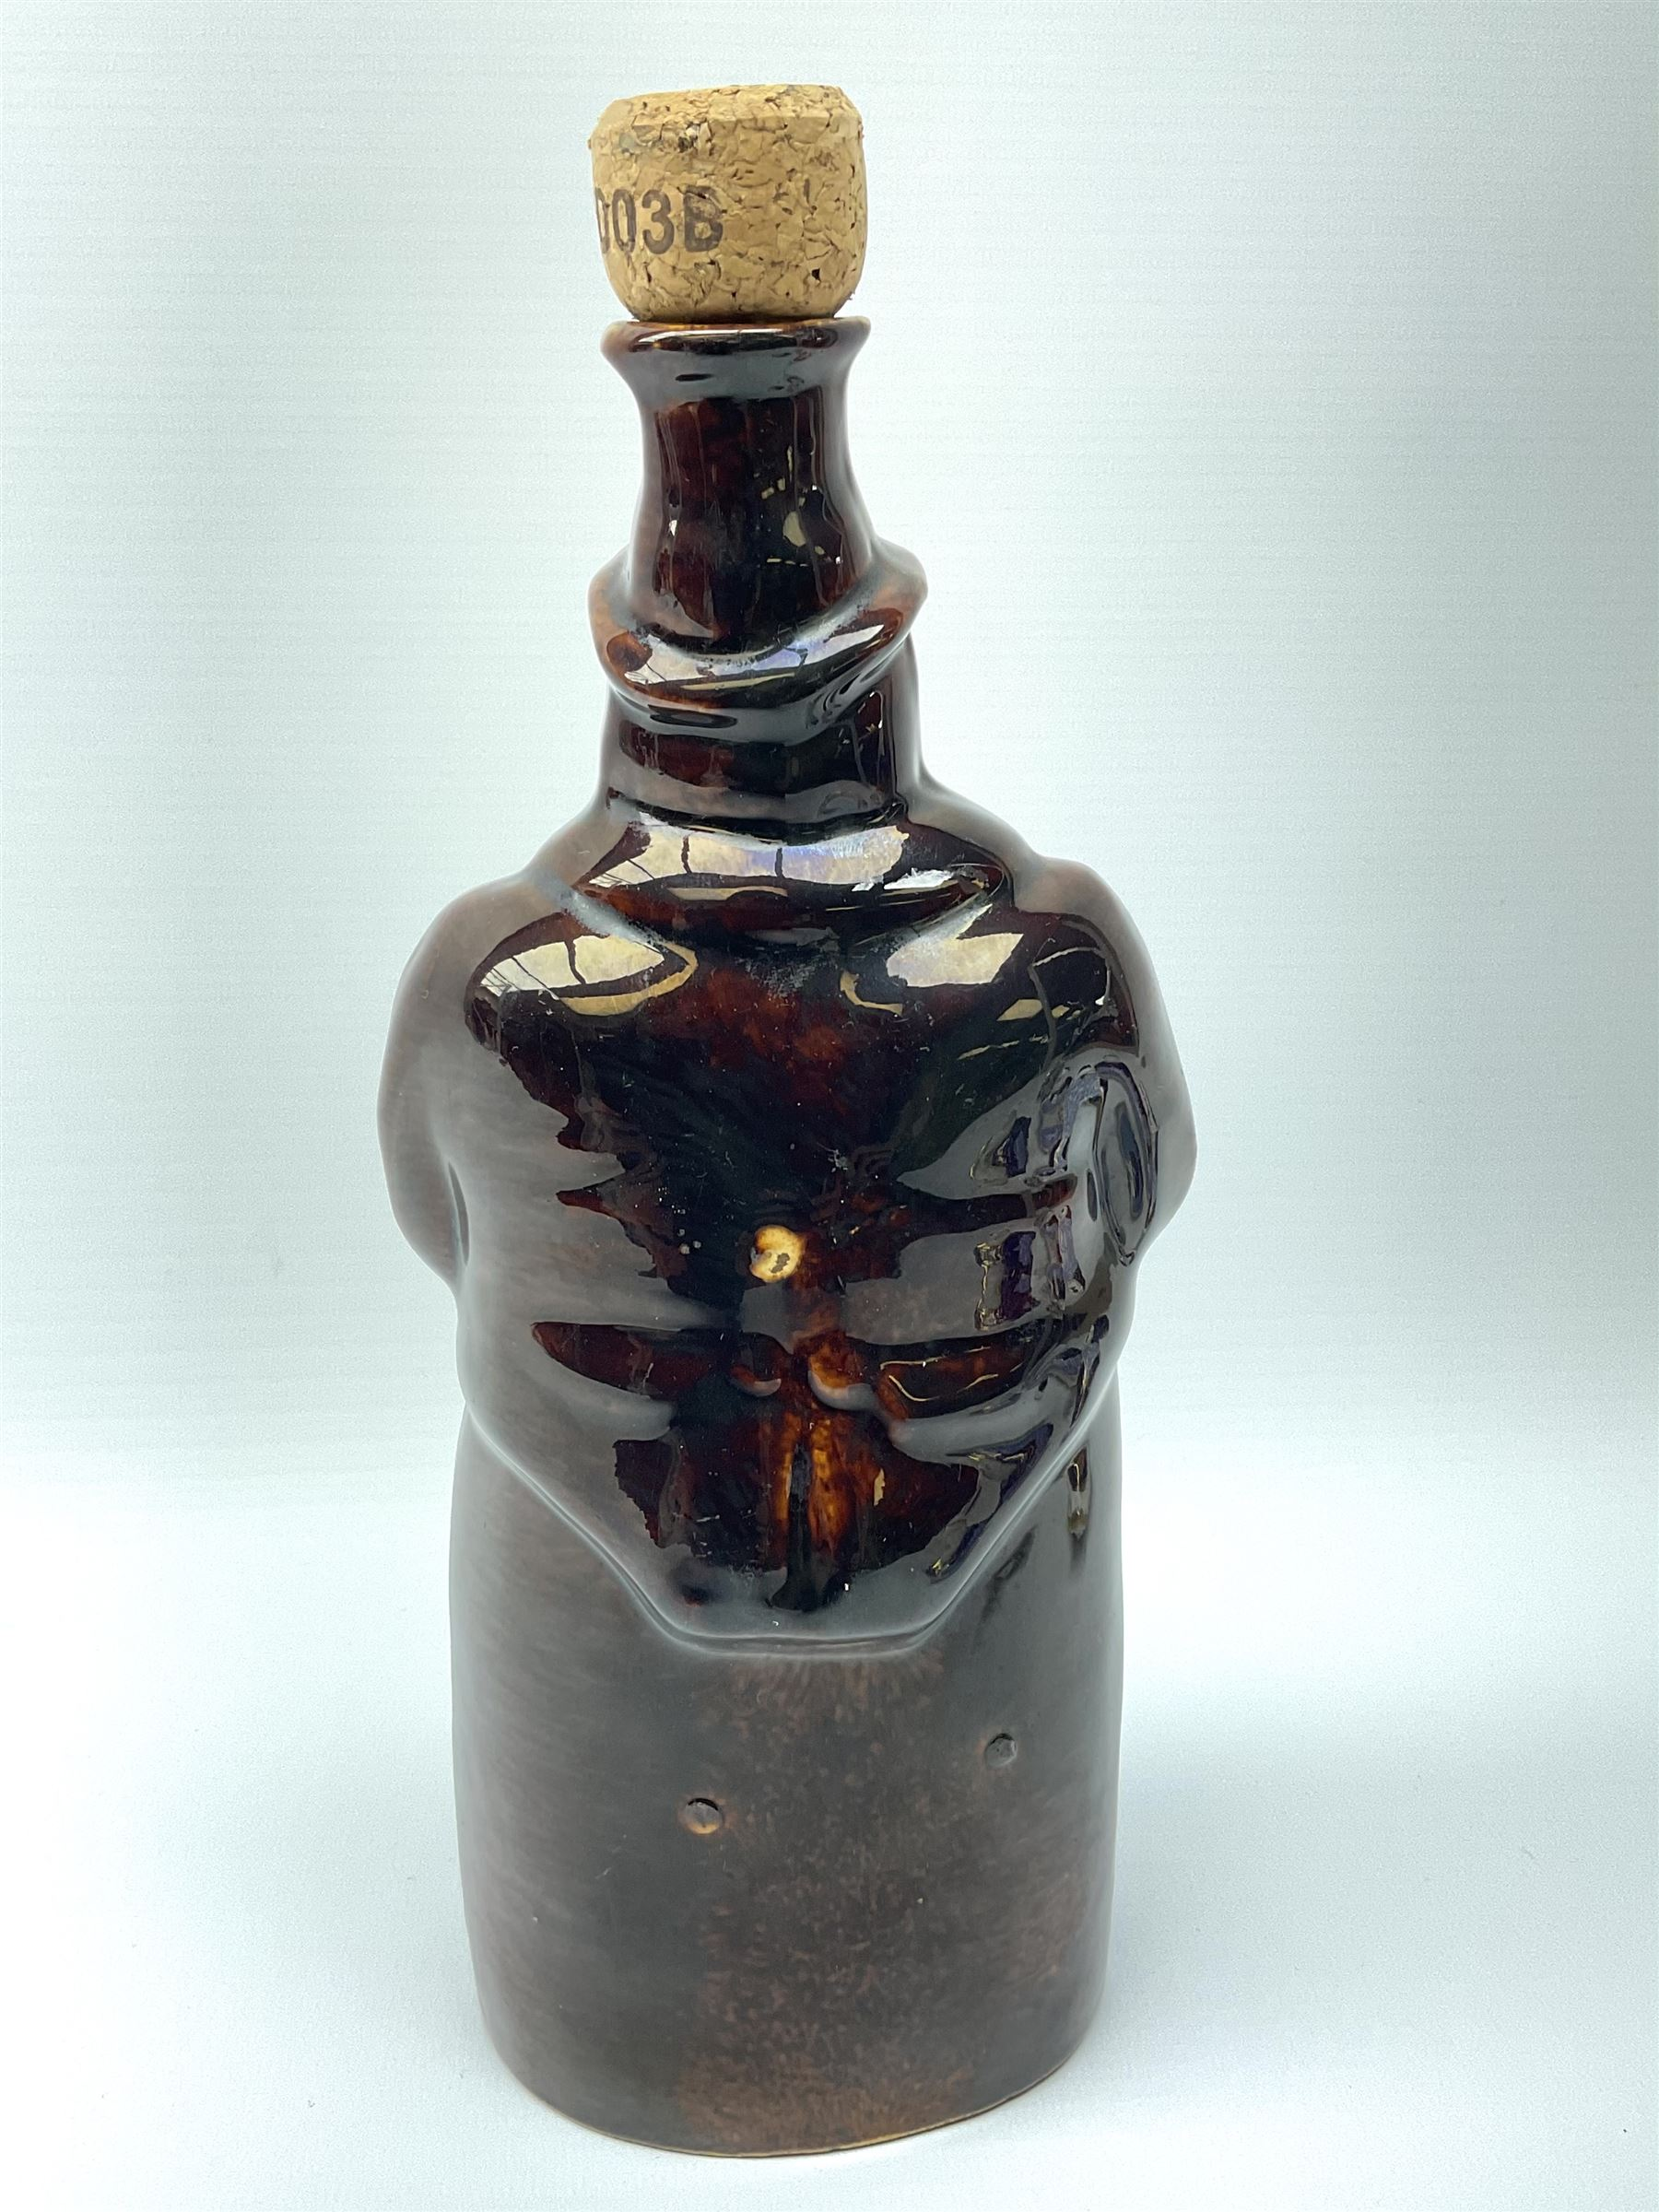 A treacle glazed stoneware bottle modelled as a man seated upon a barrel - Image 6 of 6